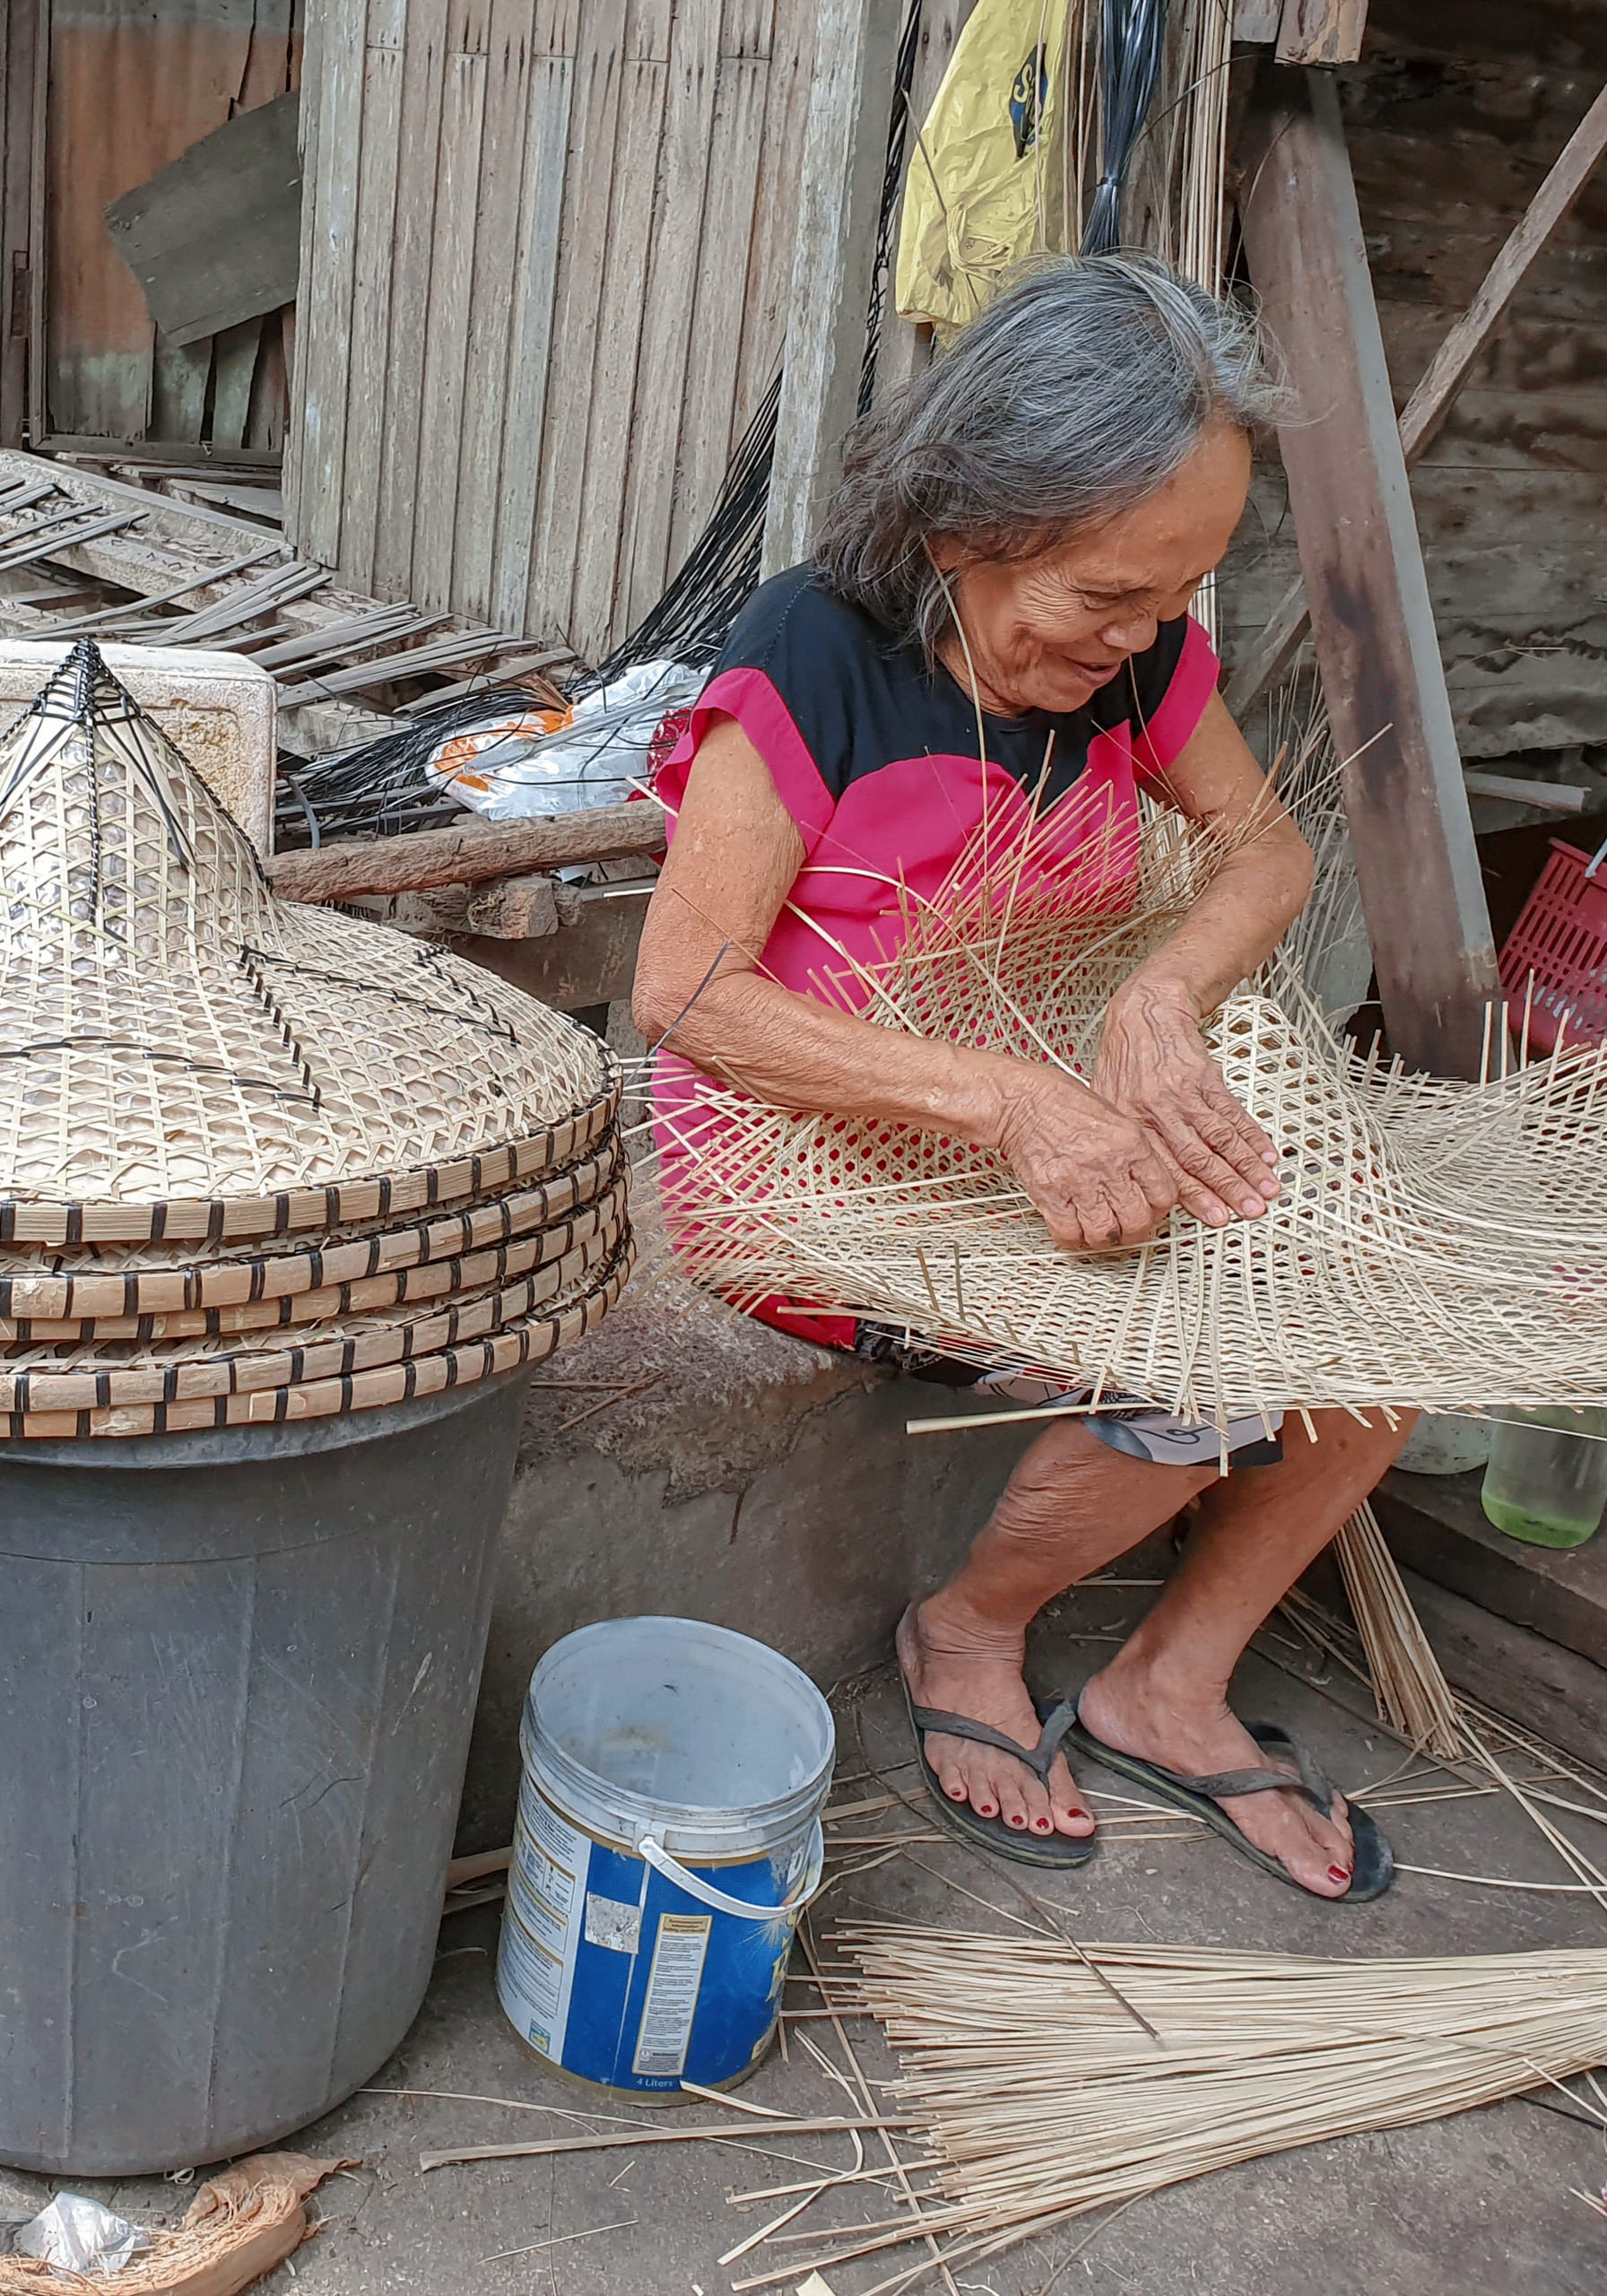 Weaving the strips into a rain hat